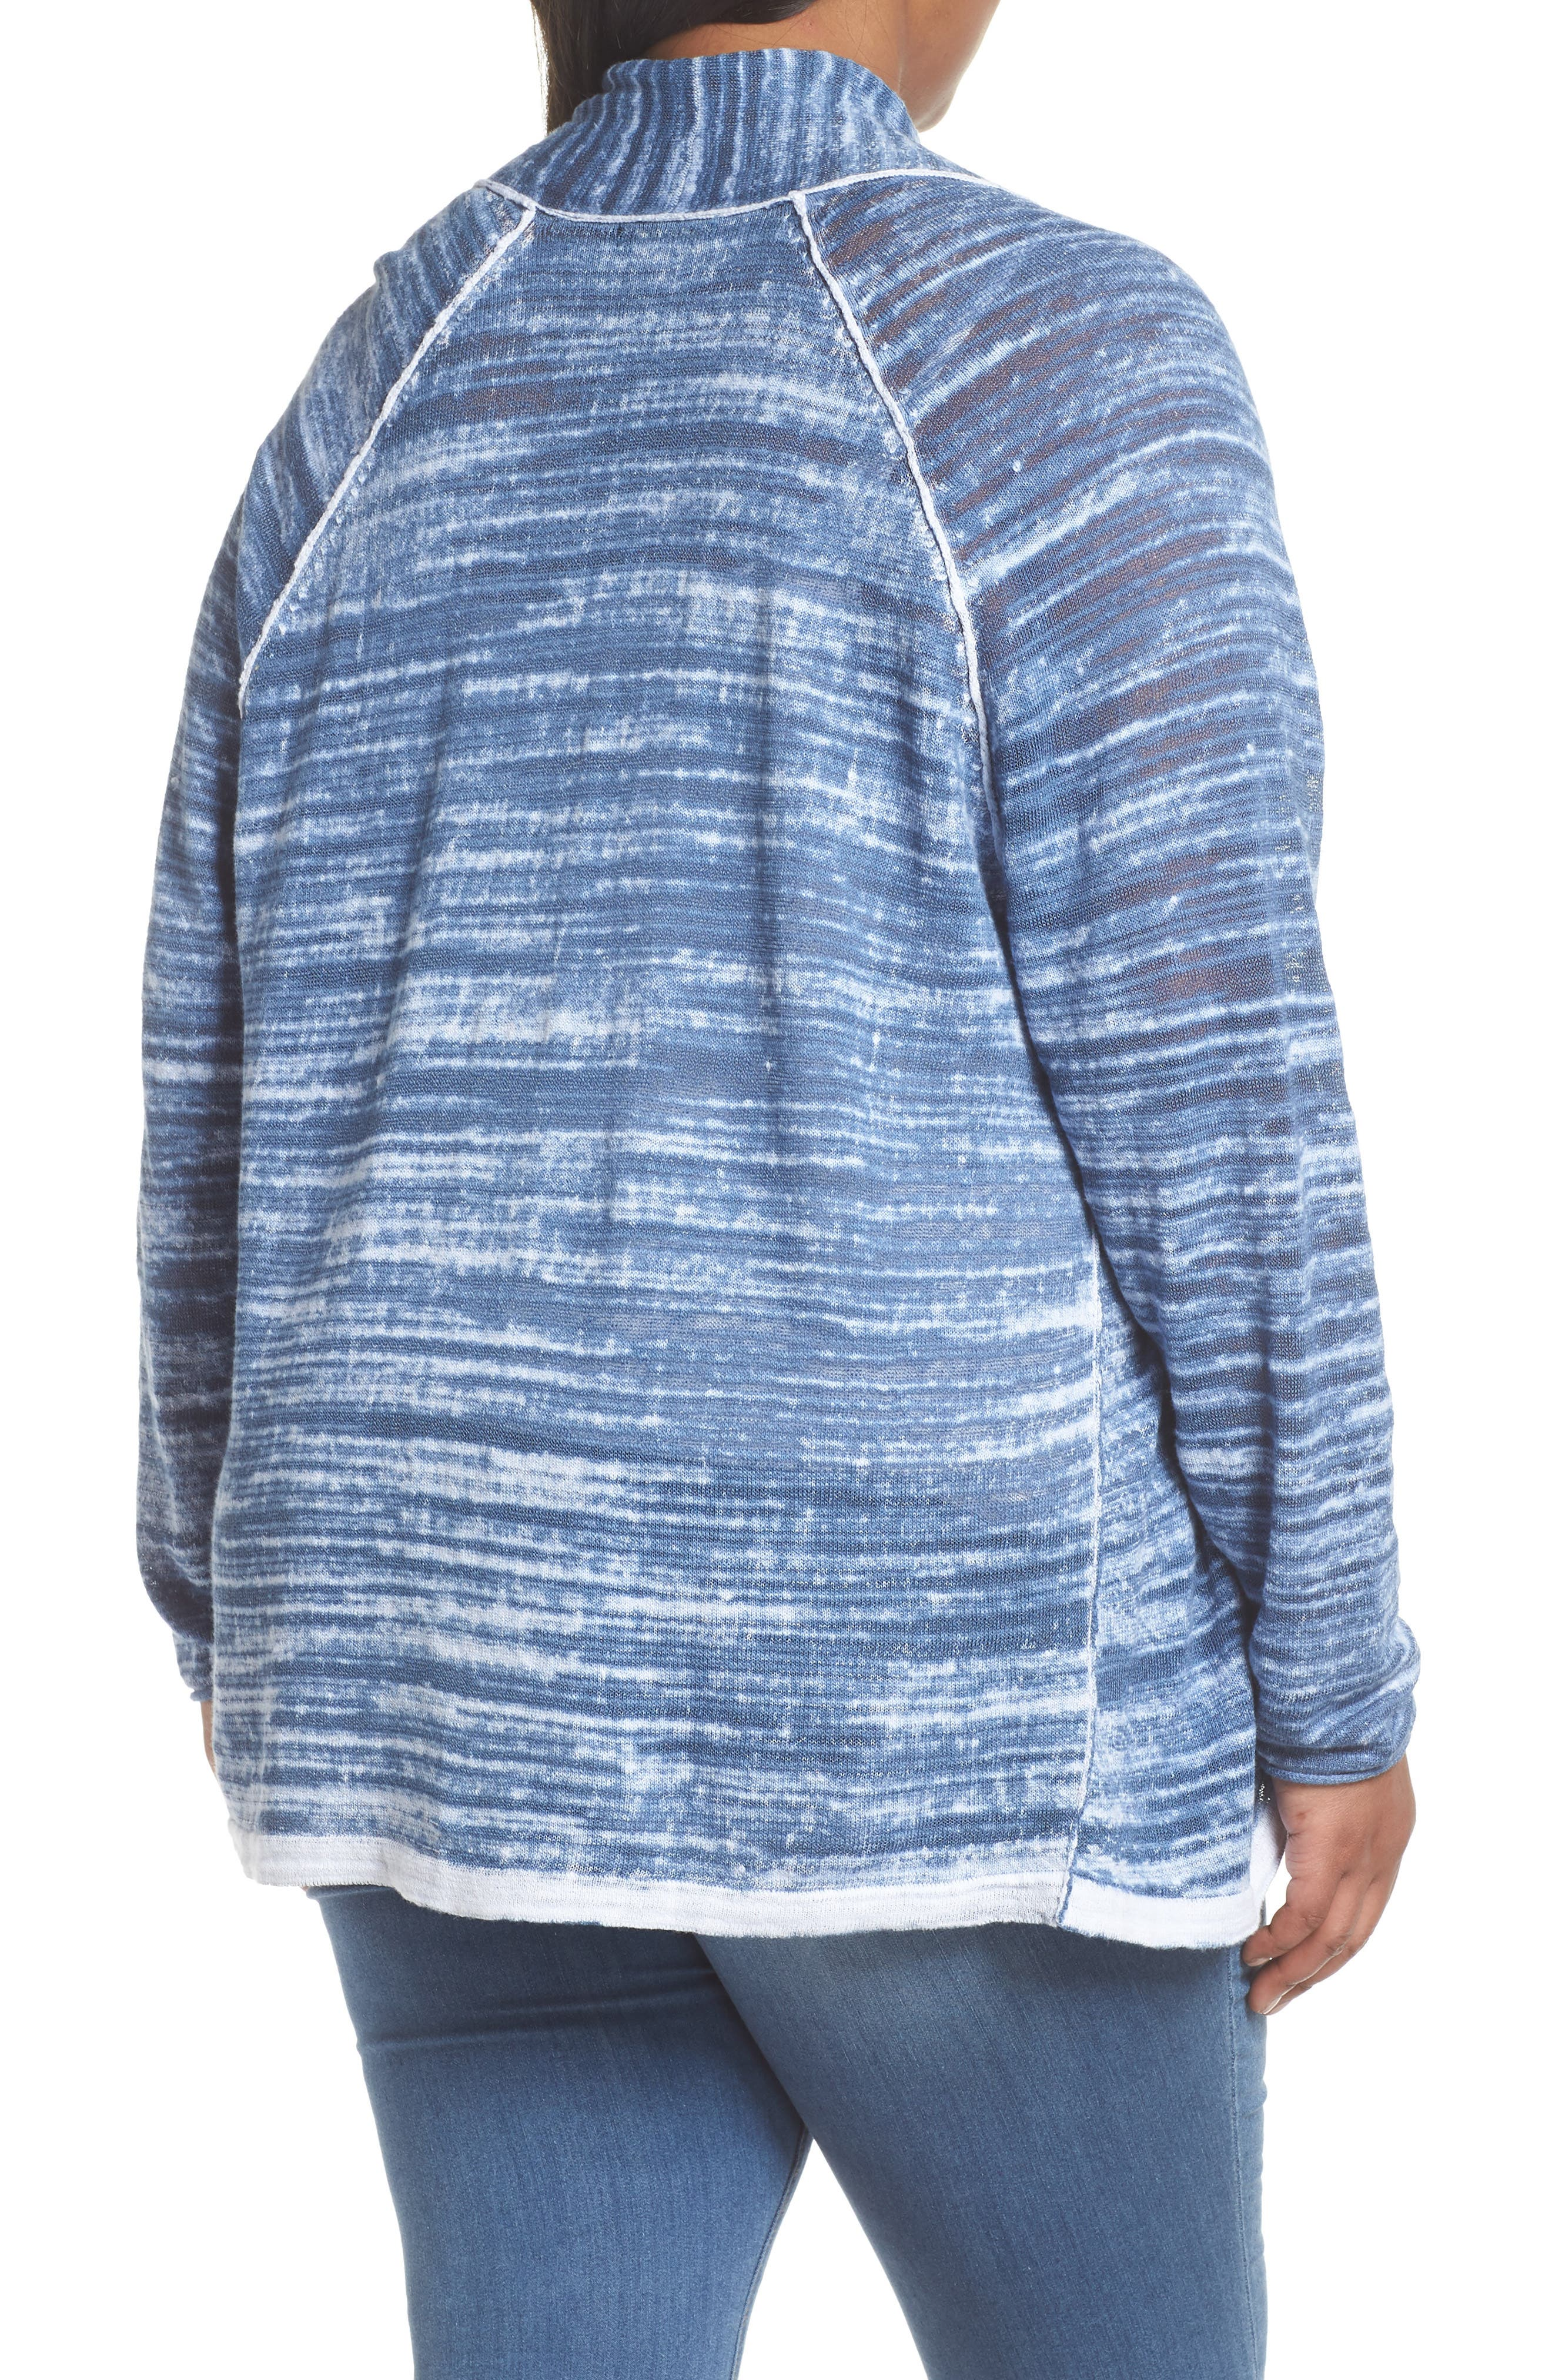 Sand Dune Ruched Sleeve Cardigan,                             Alternate thumbnail 2, color,                             Mosaic Blue